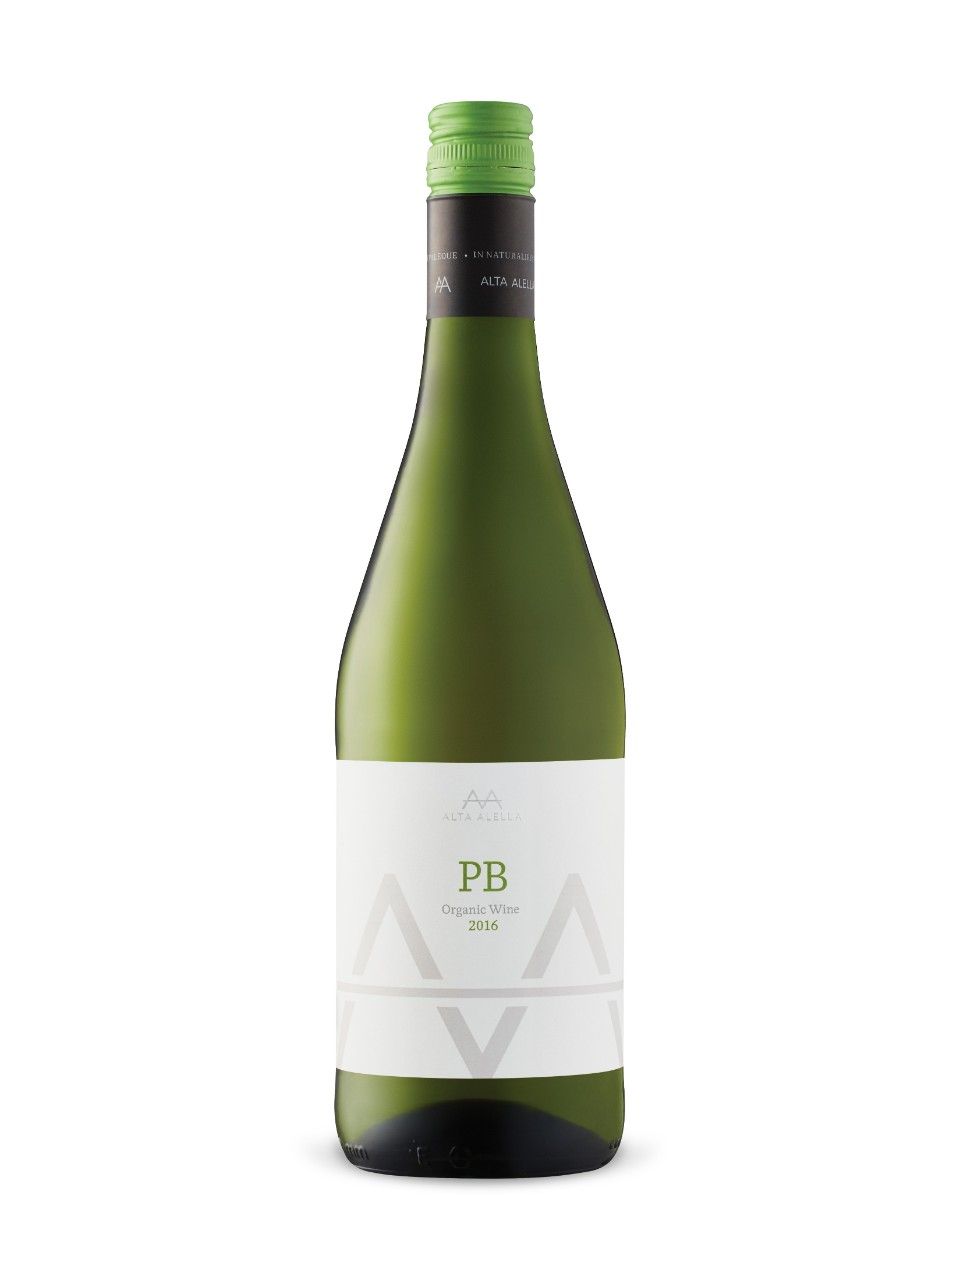 Image for Alta Alella PB Pansa Blanca 2016 from LCBO